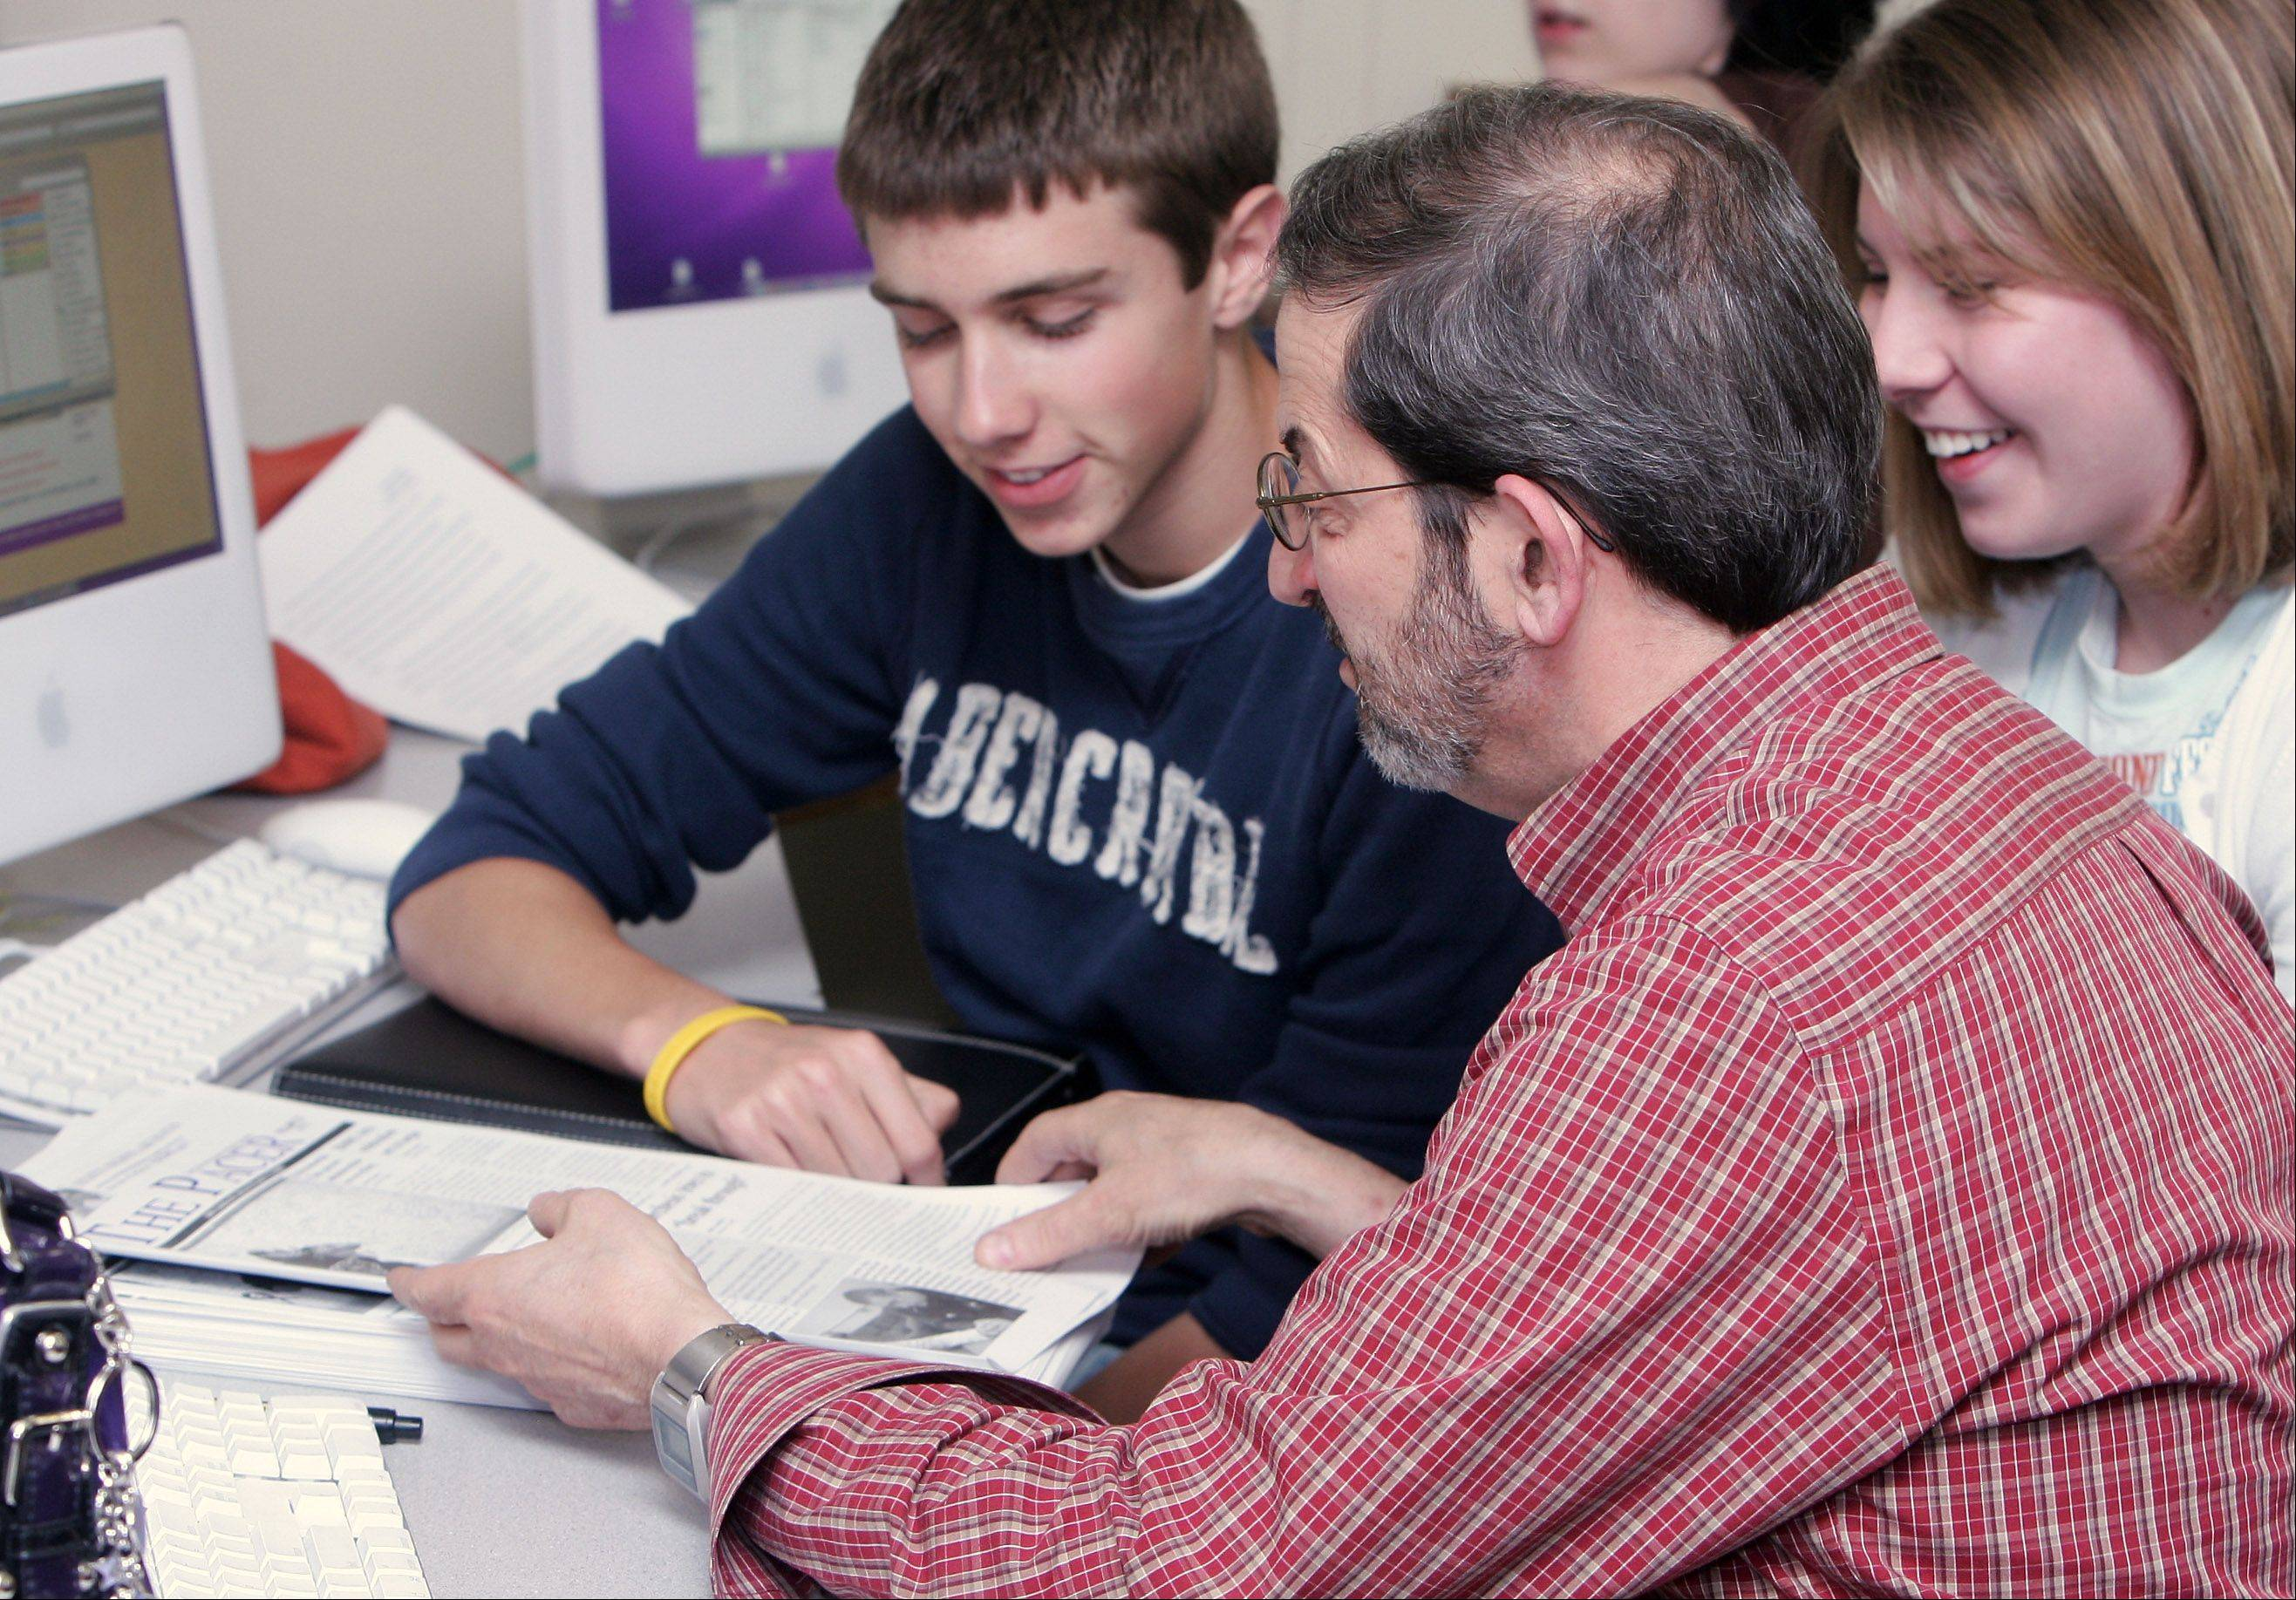 Adviser Stan Zoller works with members of the Rolling Meadows High School student newspaper, The Pacer, prepare the next issue. Zoller recently learned he will not have a job at the high school next year.